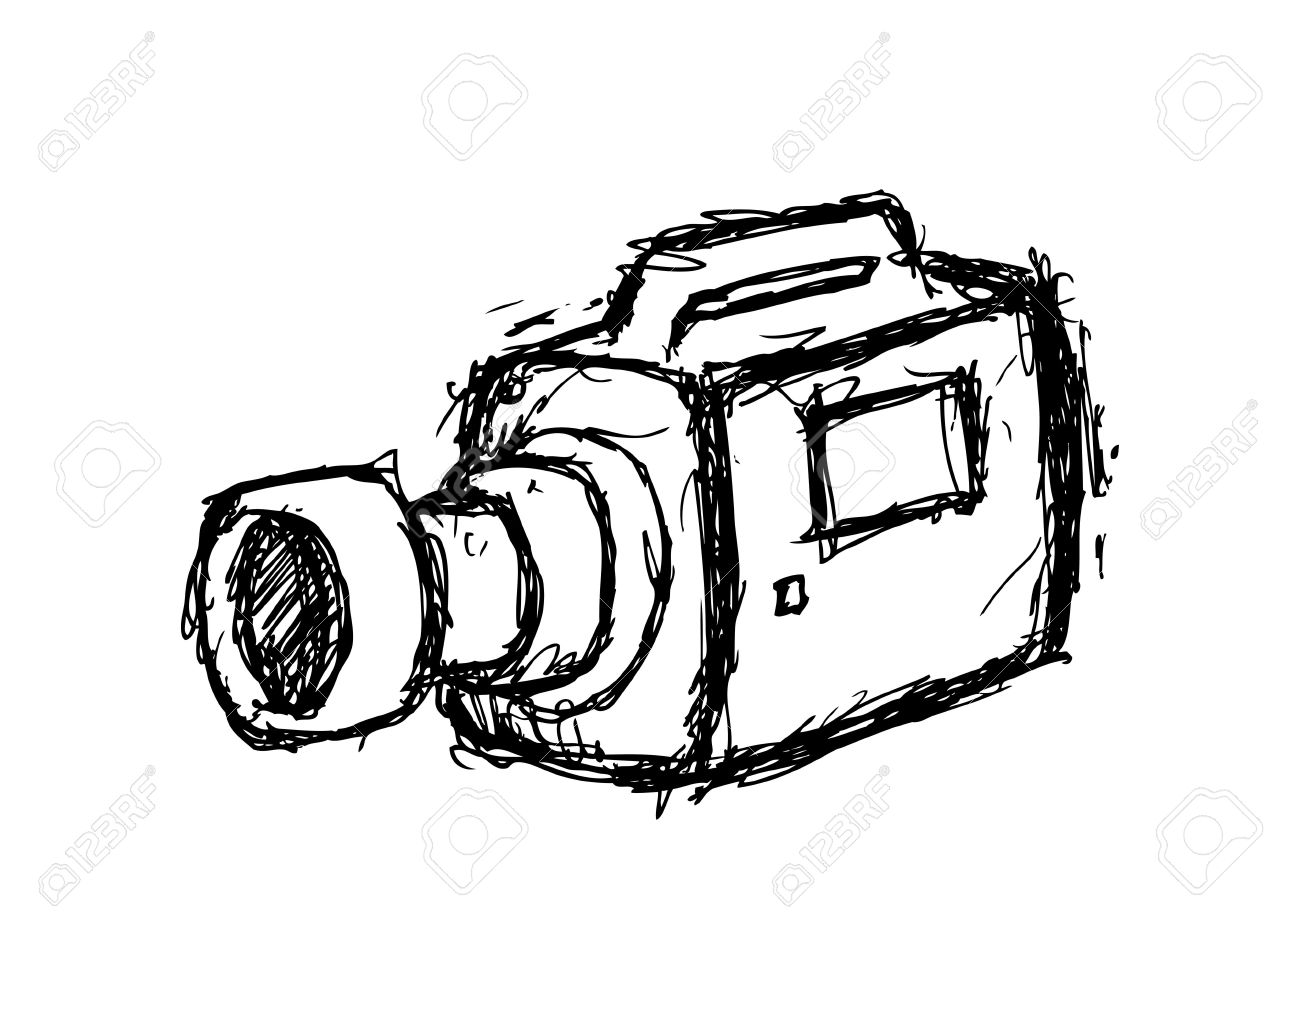 Hand Drawn Video Camera Royalty Free Cliparts, Vectors, And Stock ... for Camera Equipment Clipart  183qdu